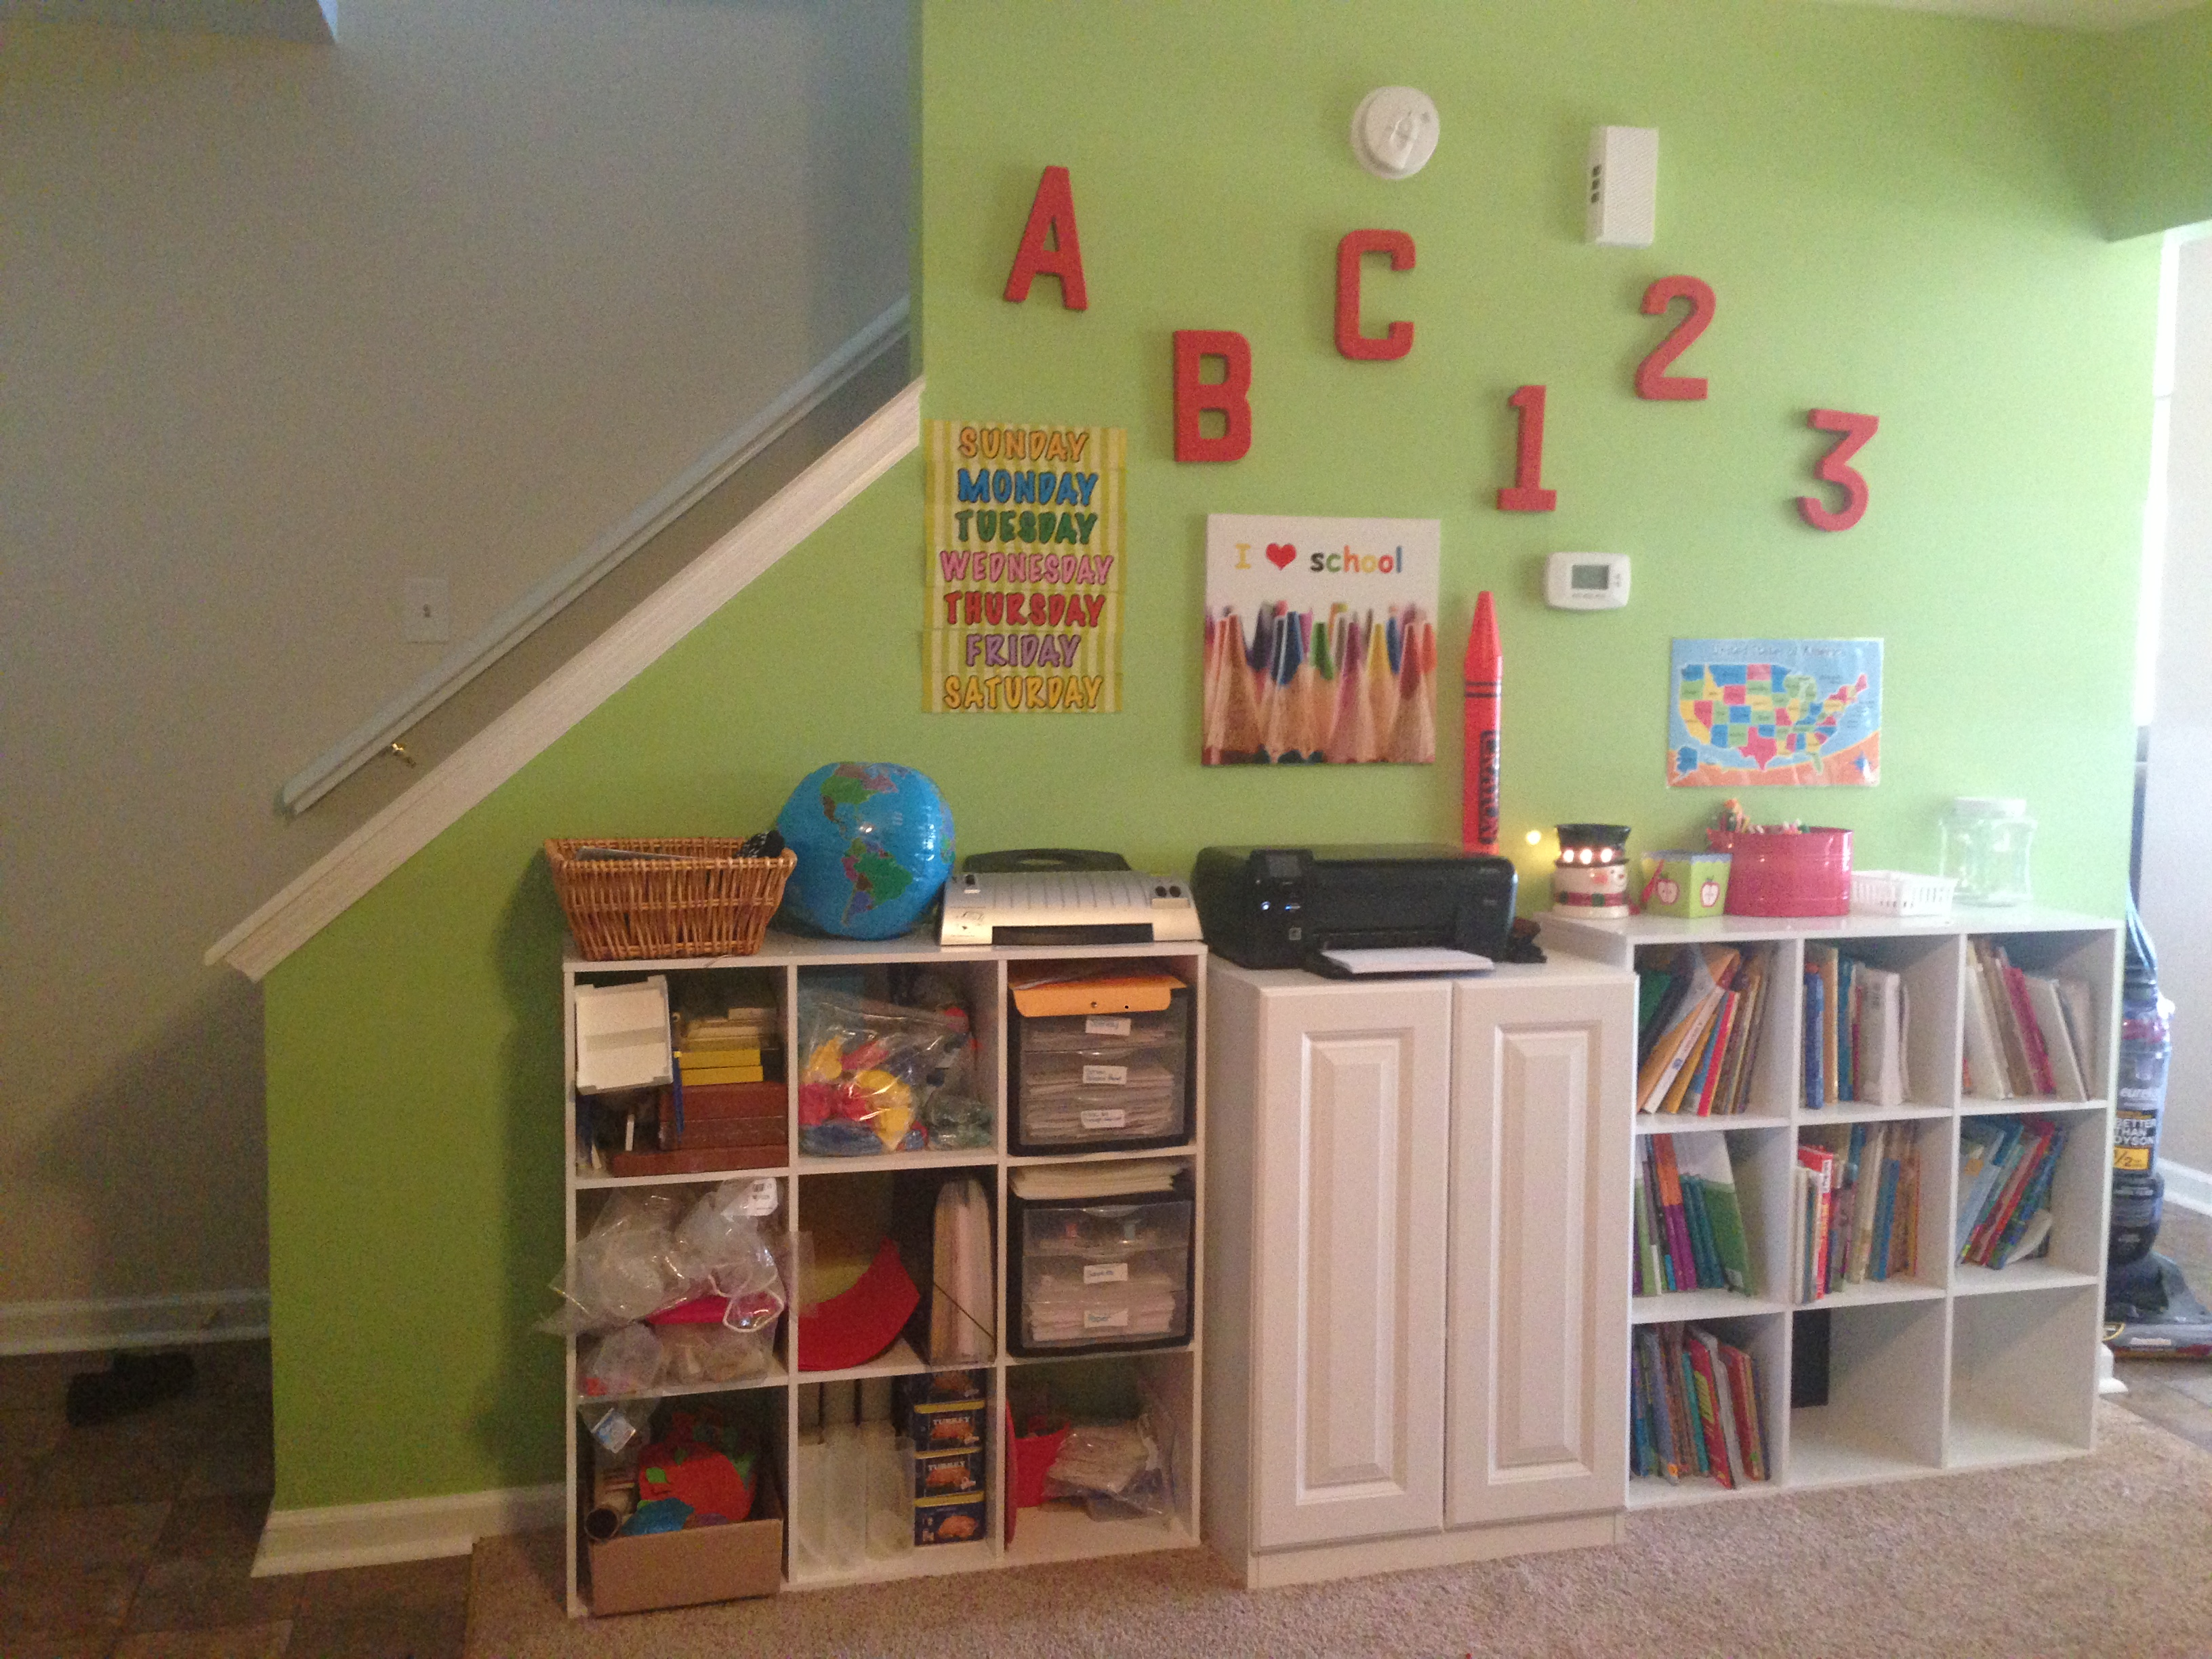 Online school classroom | Back to School: Coolest Learning Spaces